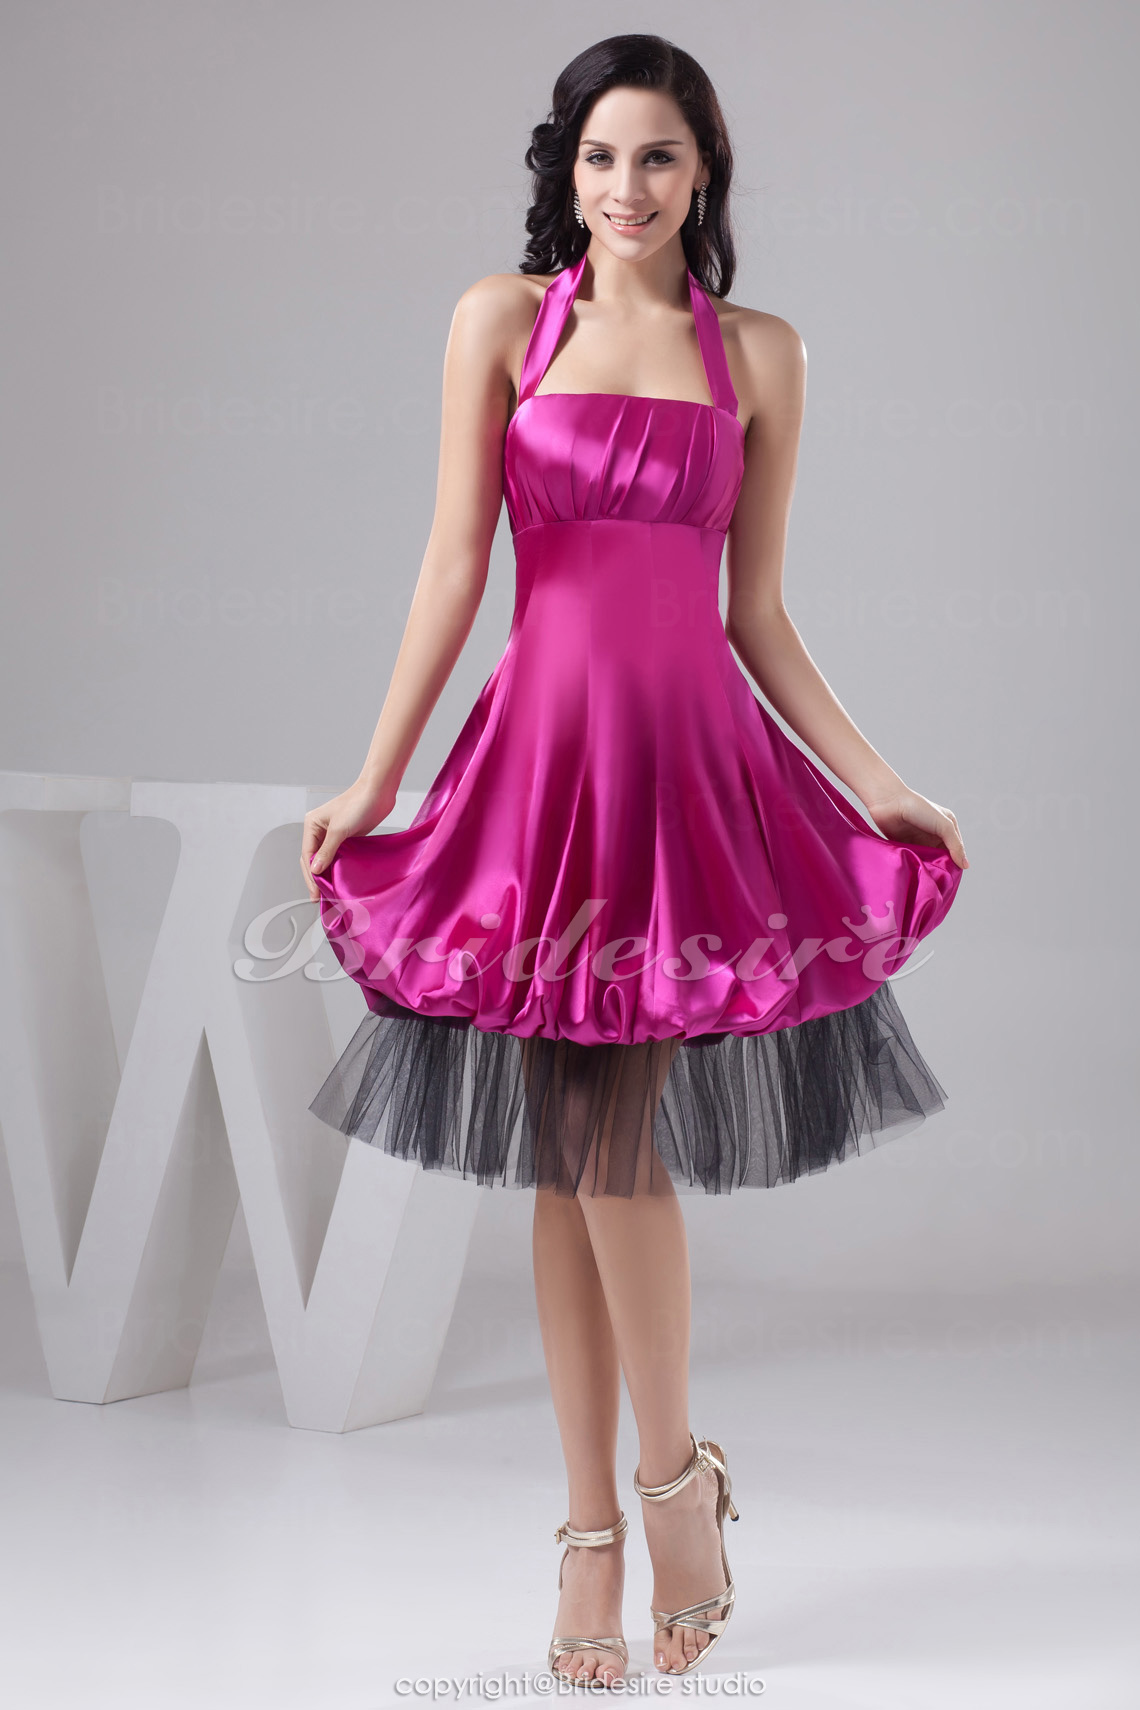 A-line Halter Tea-length Sleeveless Satin Tulle Dress